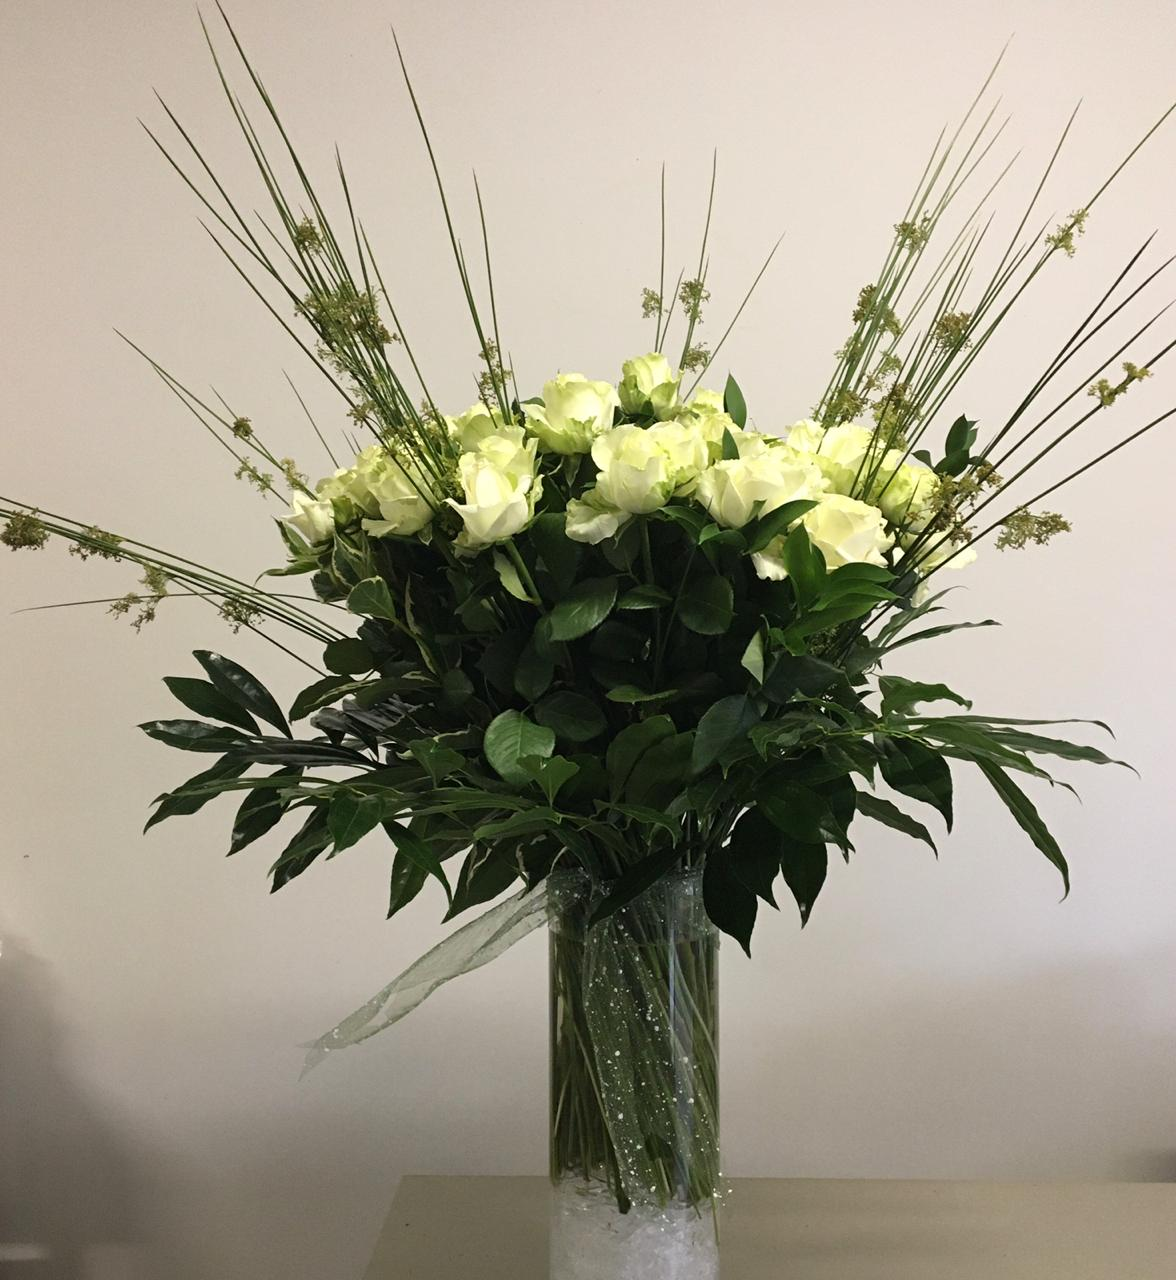 White Rose arrangements in a vase from